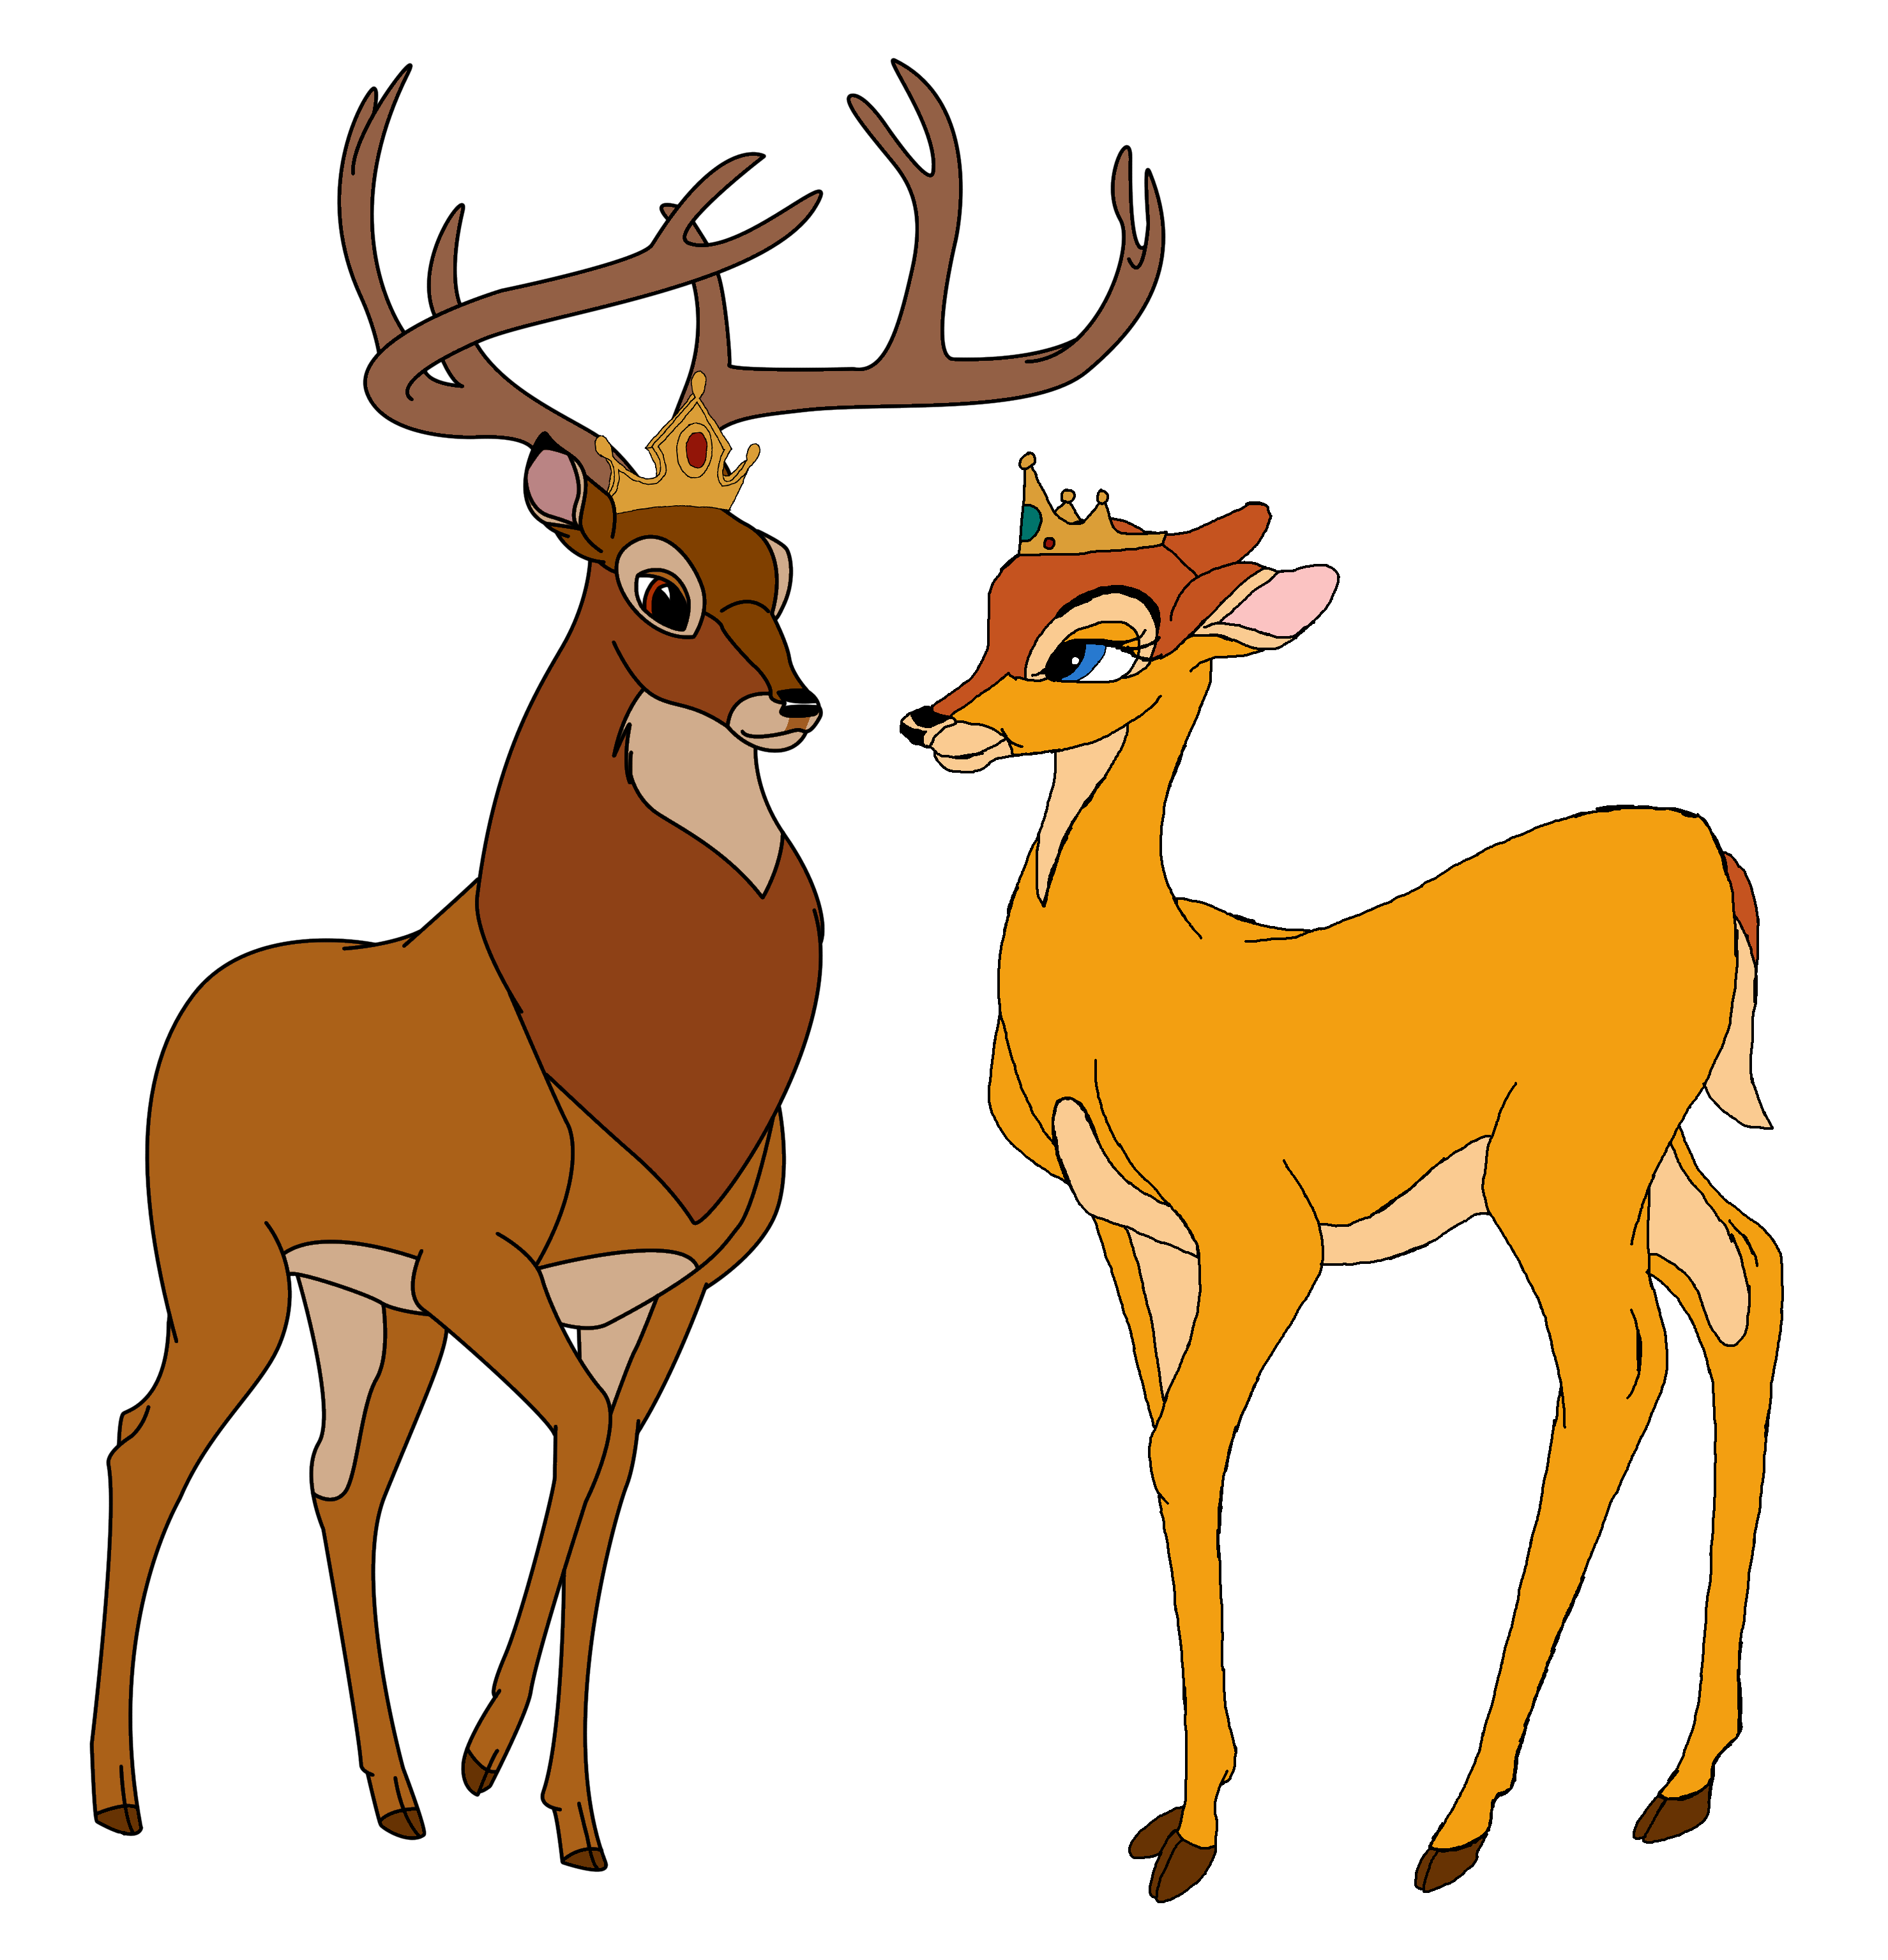 great_prince_bambi_and_great_princess_faline_by_princelionel-d6y6tis.png